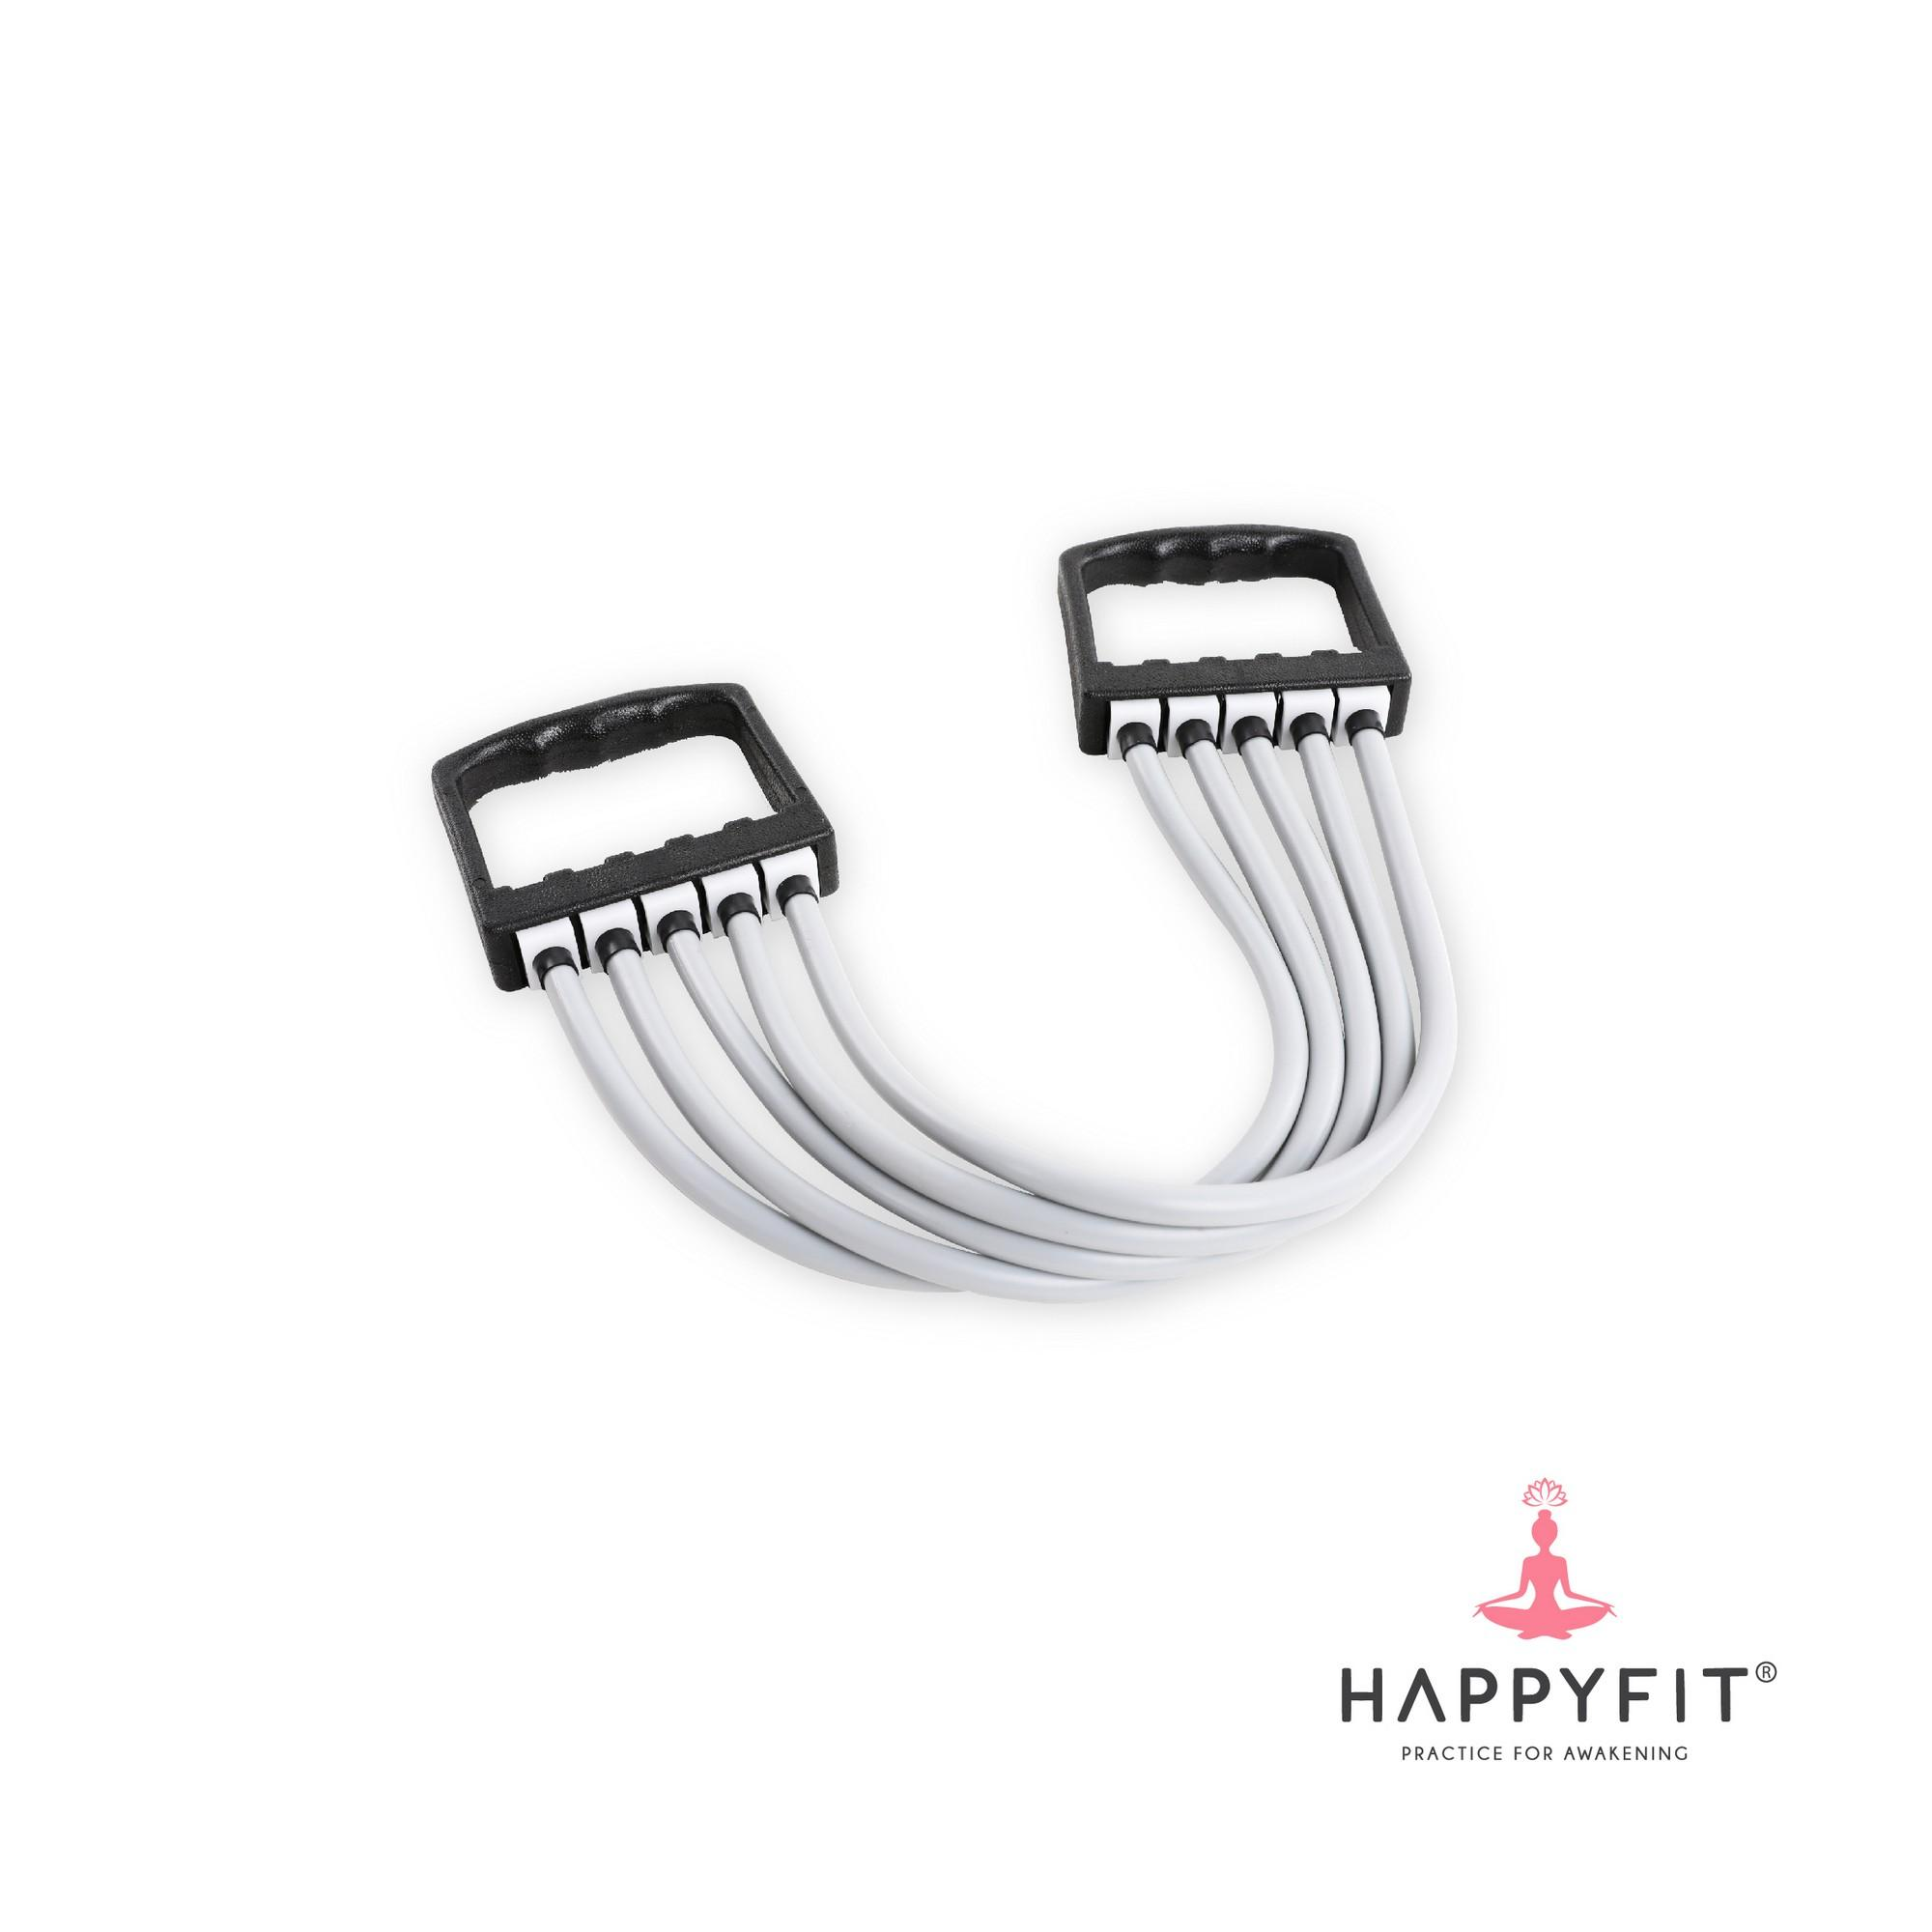 Happyfit Adjustable Chest Expander / Removable 5 Tube Rubber / Yoga Training Rope By Happyfit Indonesia.